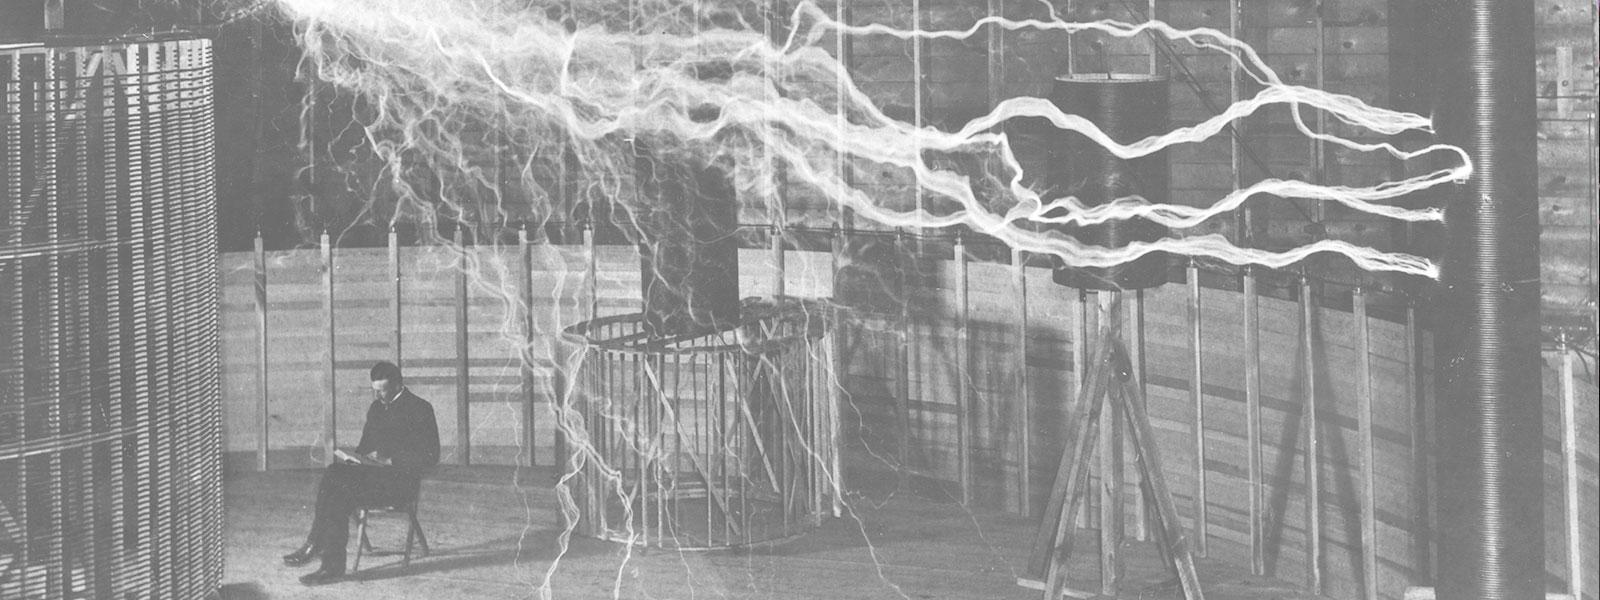 Nikola Tesla and his Colorado Springs oscillator